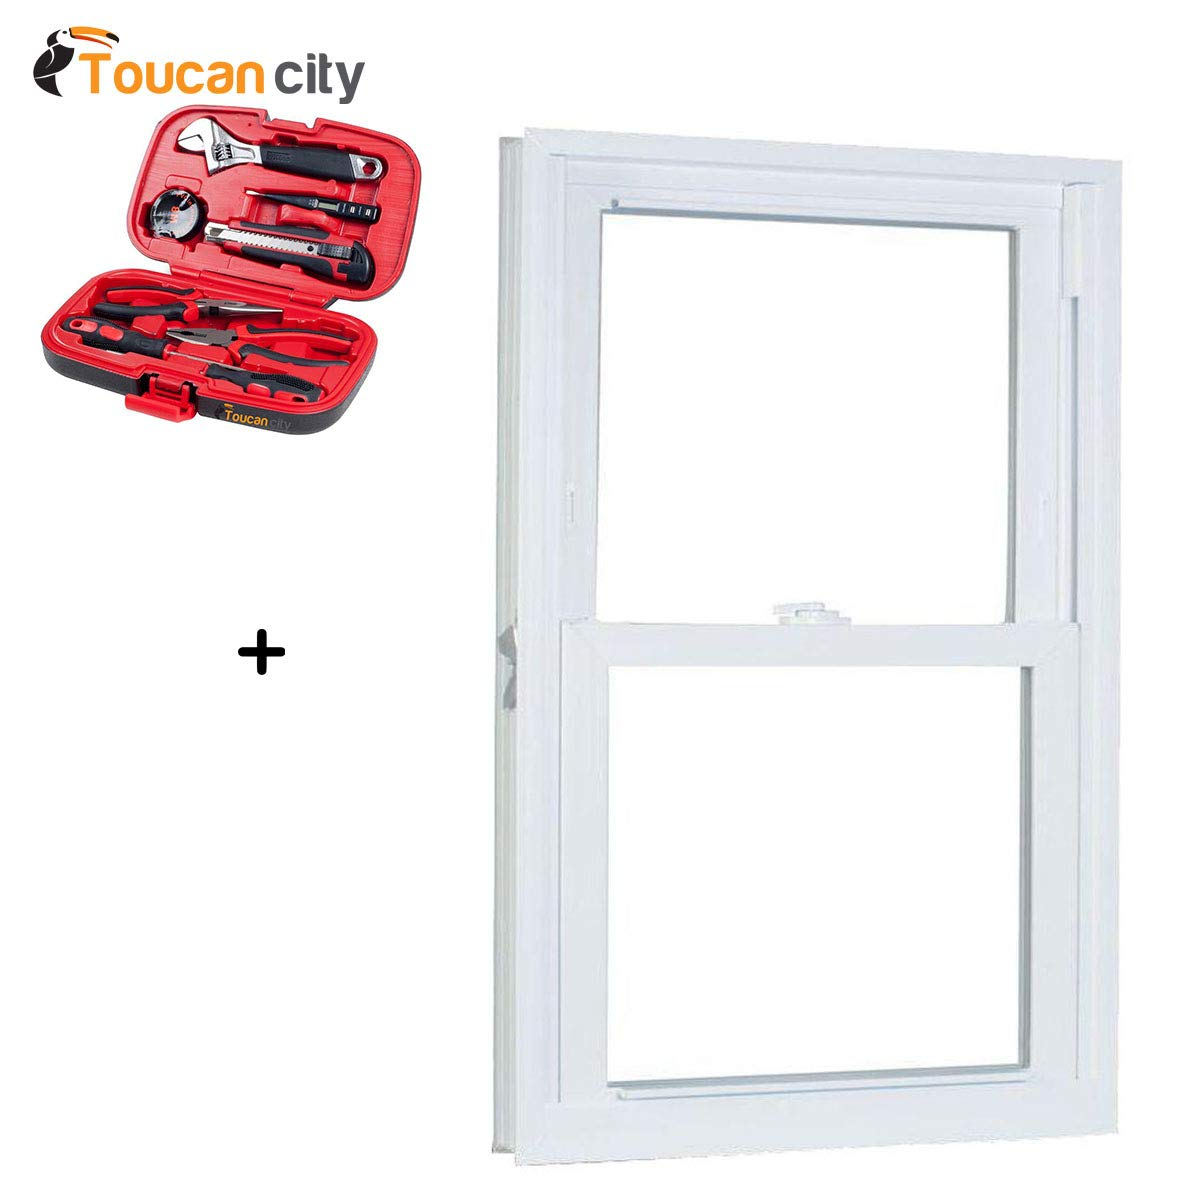 Toucan City Tool Kit (9-Piece) and American Craftsman 27.75 in. x 65.25 in. 70 Series Pro Double Hung White Vinyl Window with Buck Frame 2866786